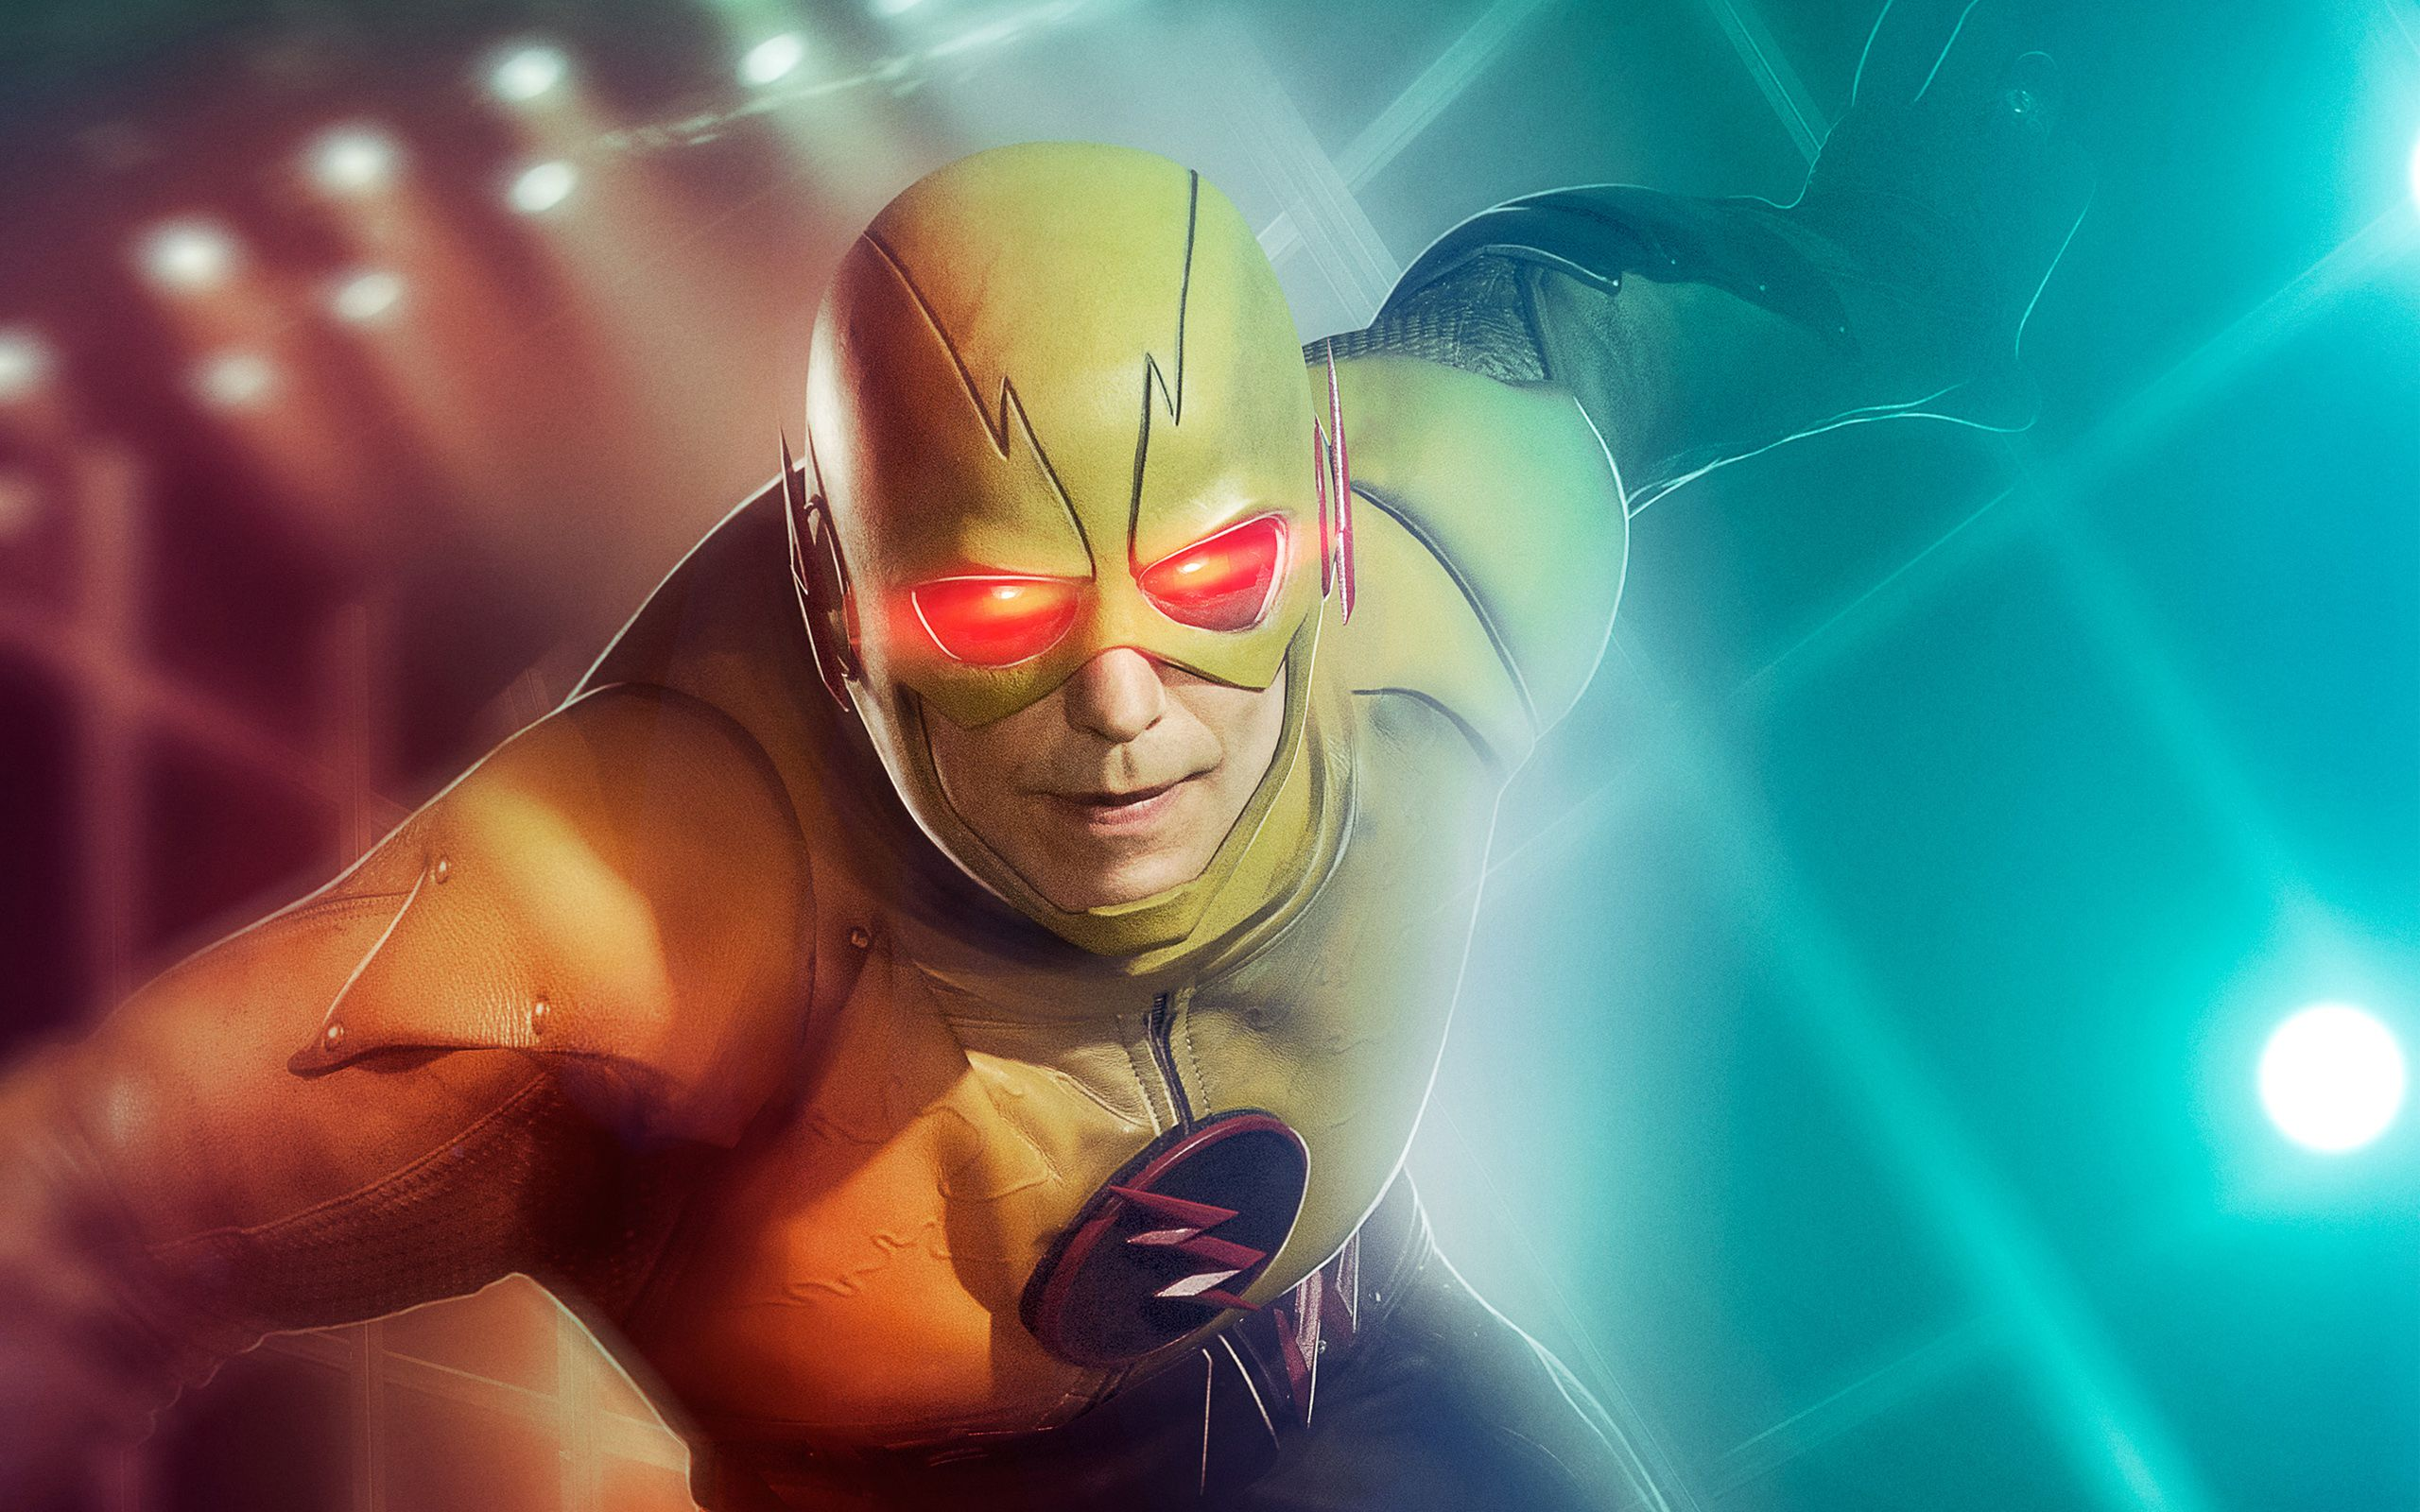 The Flash 4K Wallpaper Flash reverso, Of wallpaper, Inimigos